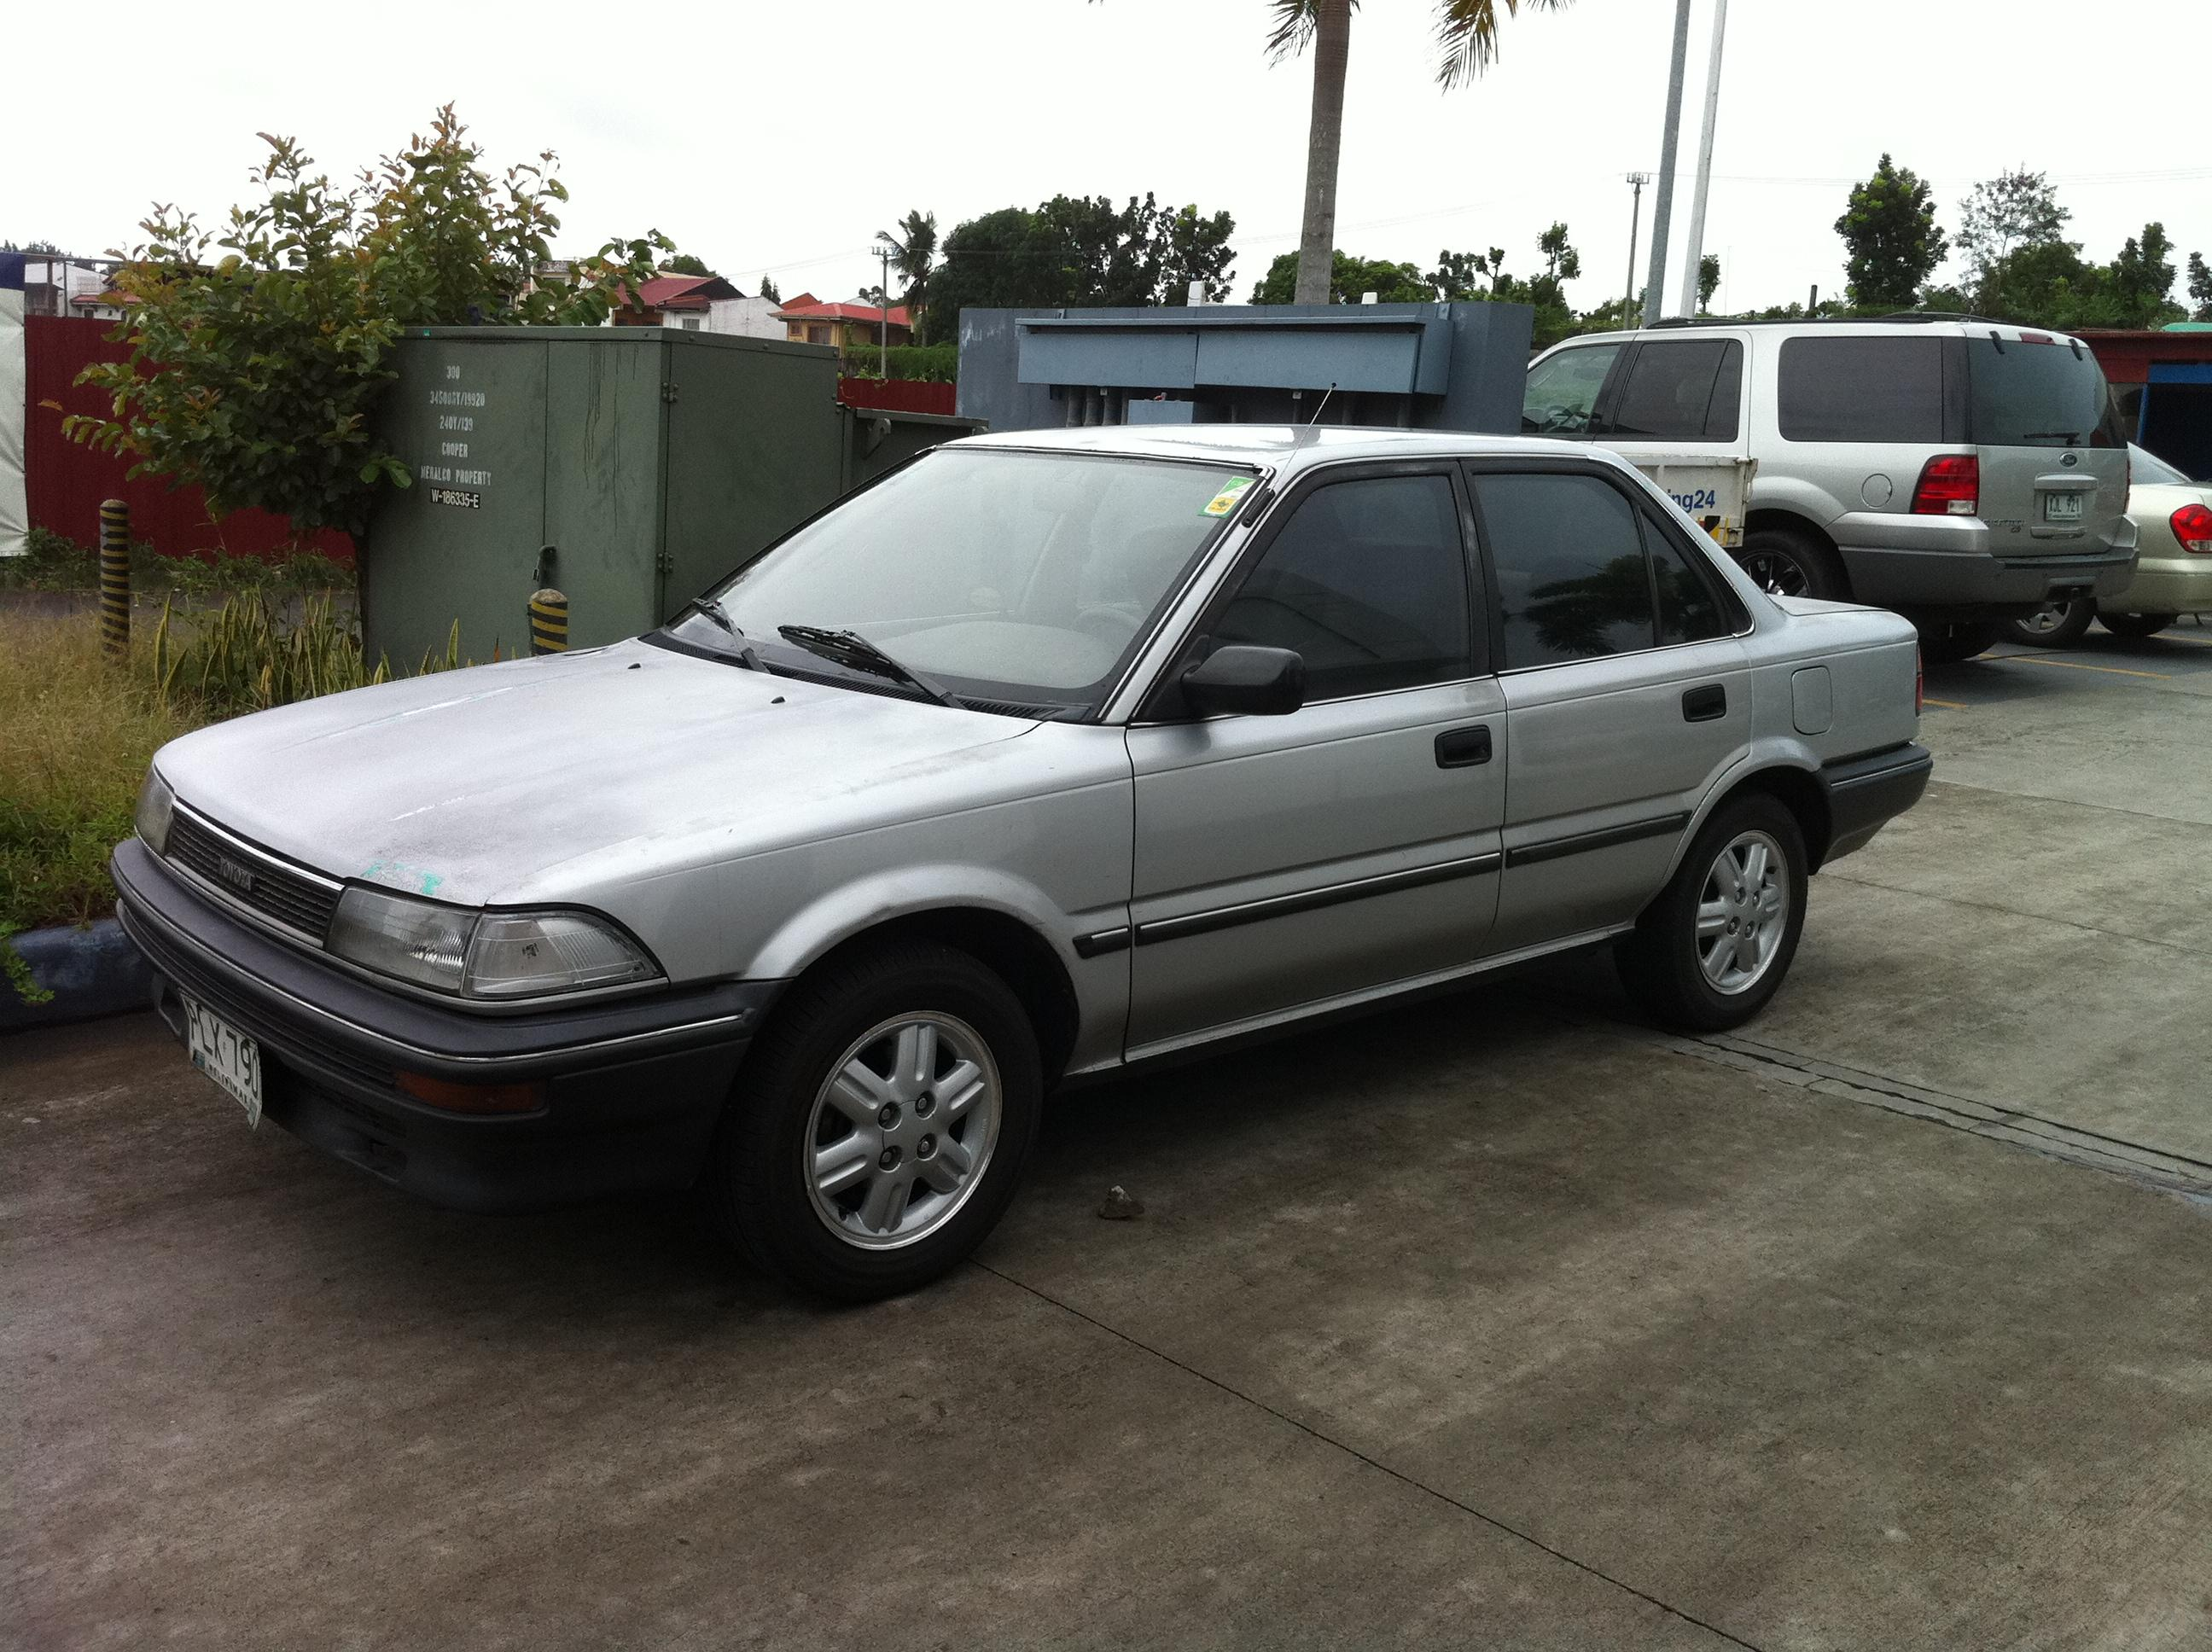 K20 Dohc 1989 Toyota Corolla Specs Photos Modification